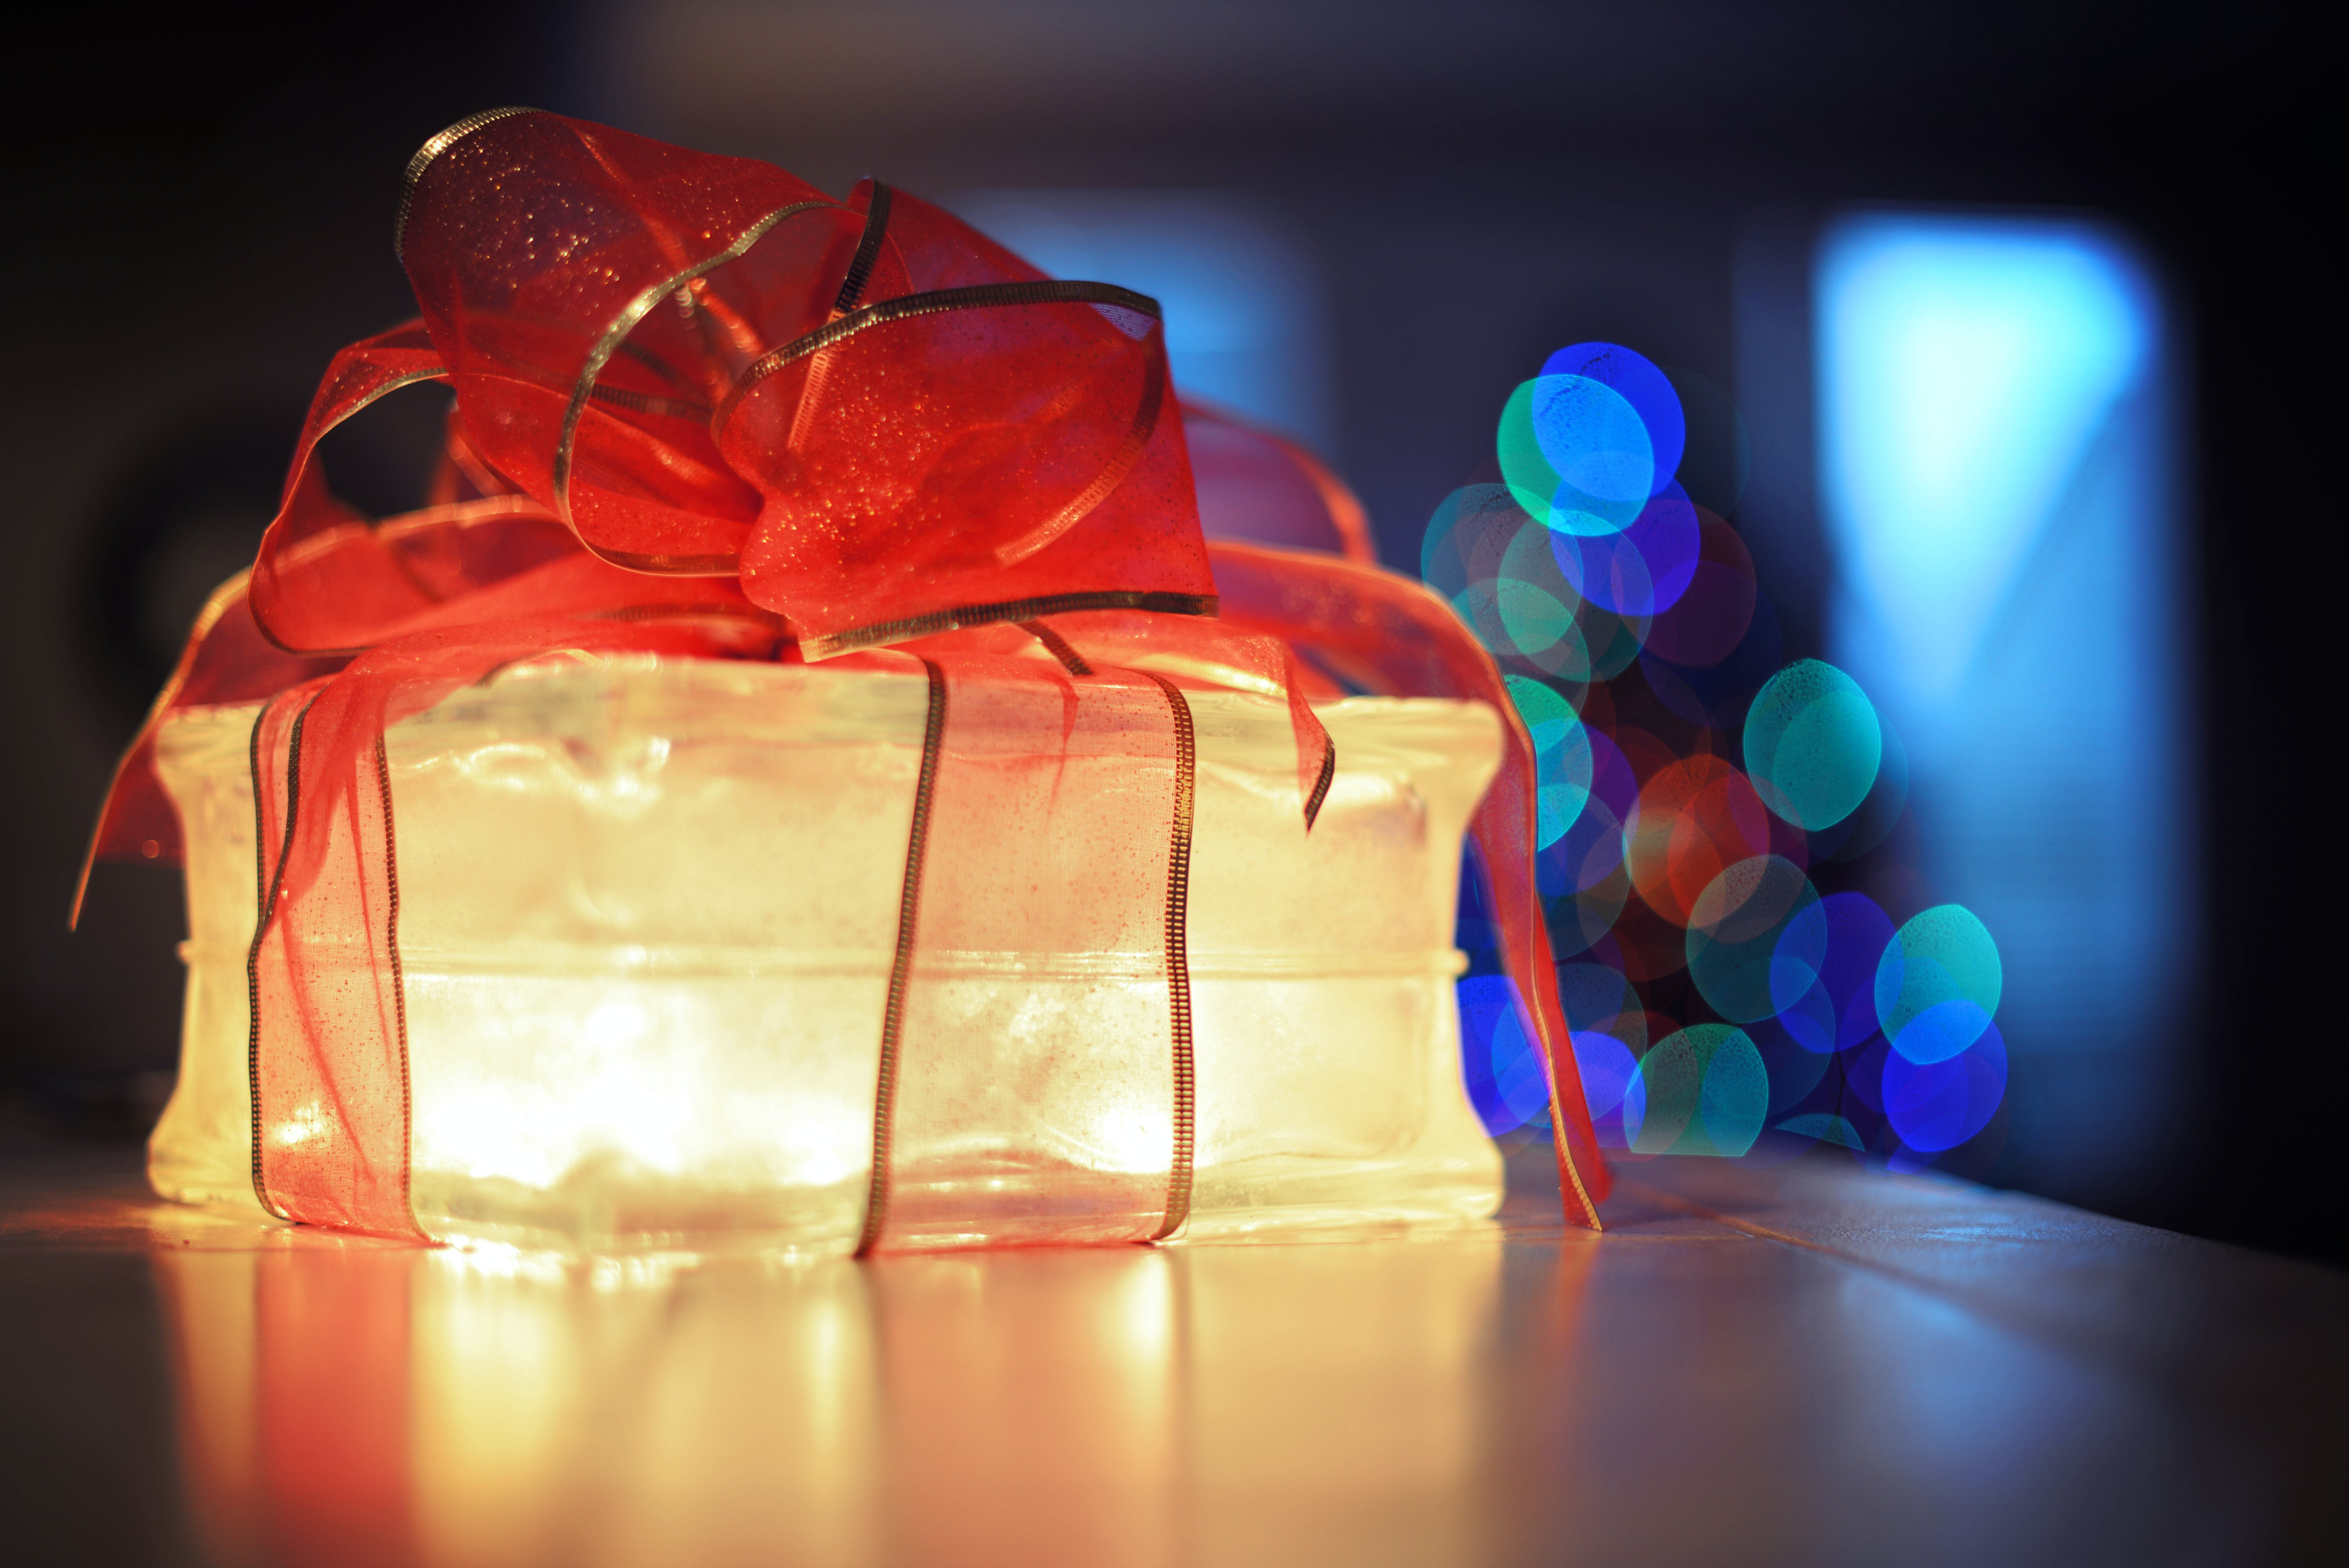 Lighted Gift Box on Brown Surface